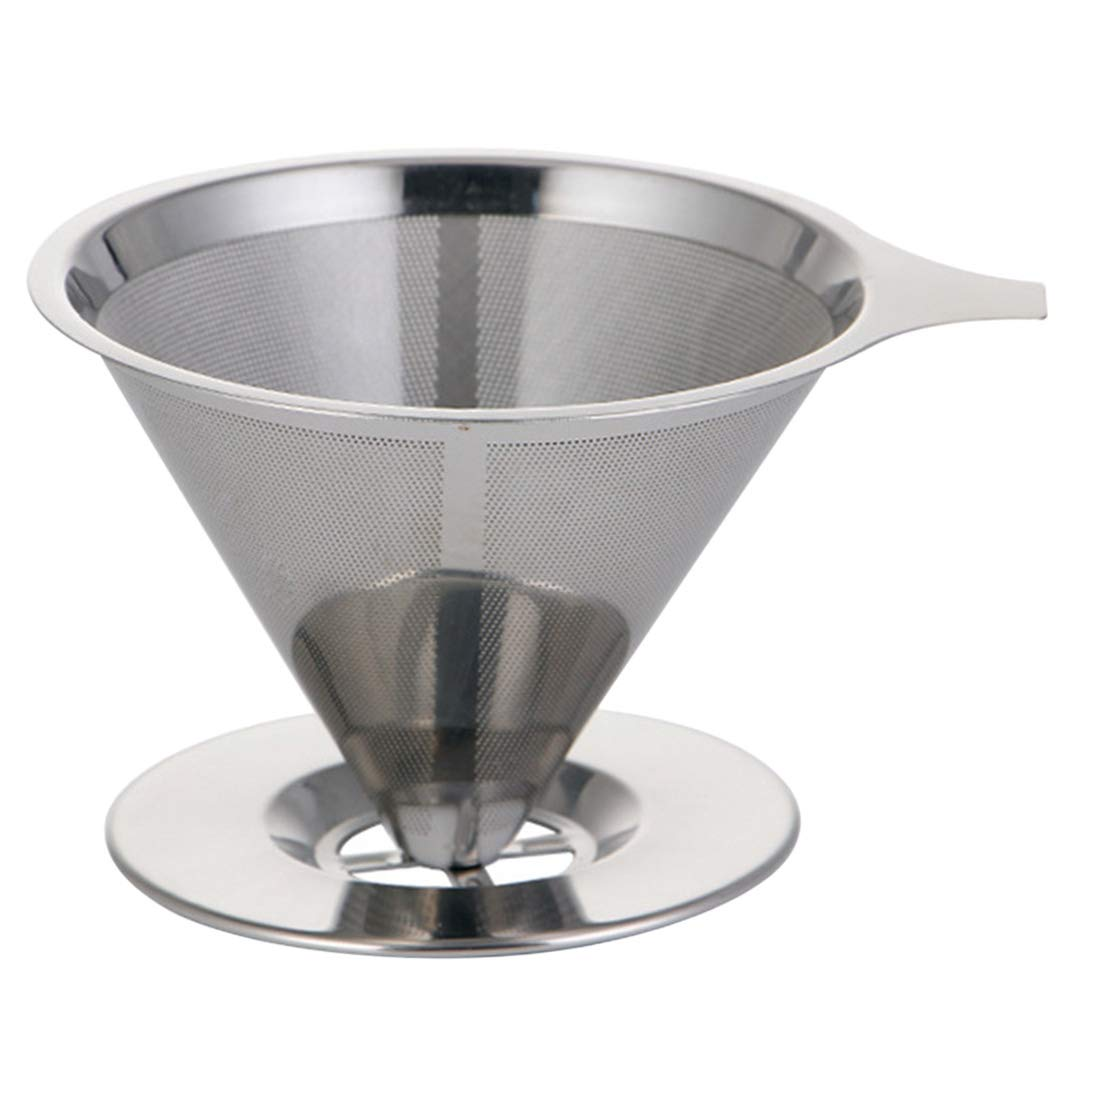 Enerhu Stainless Steel Pour Over Coffee Dripper Slow Drip Coffee Filter Cone Reusable Serve Coffee Maker